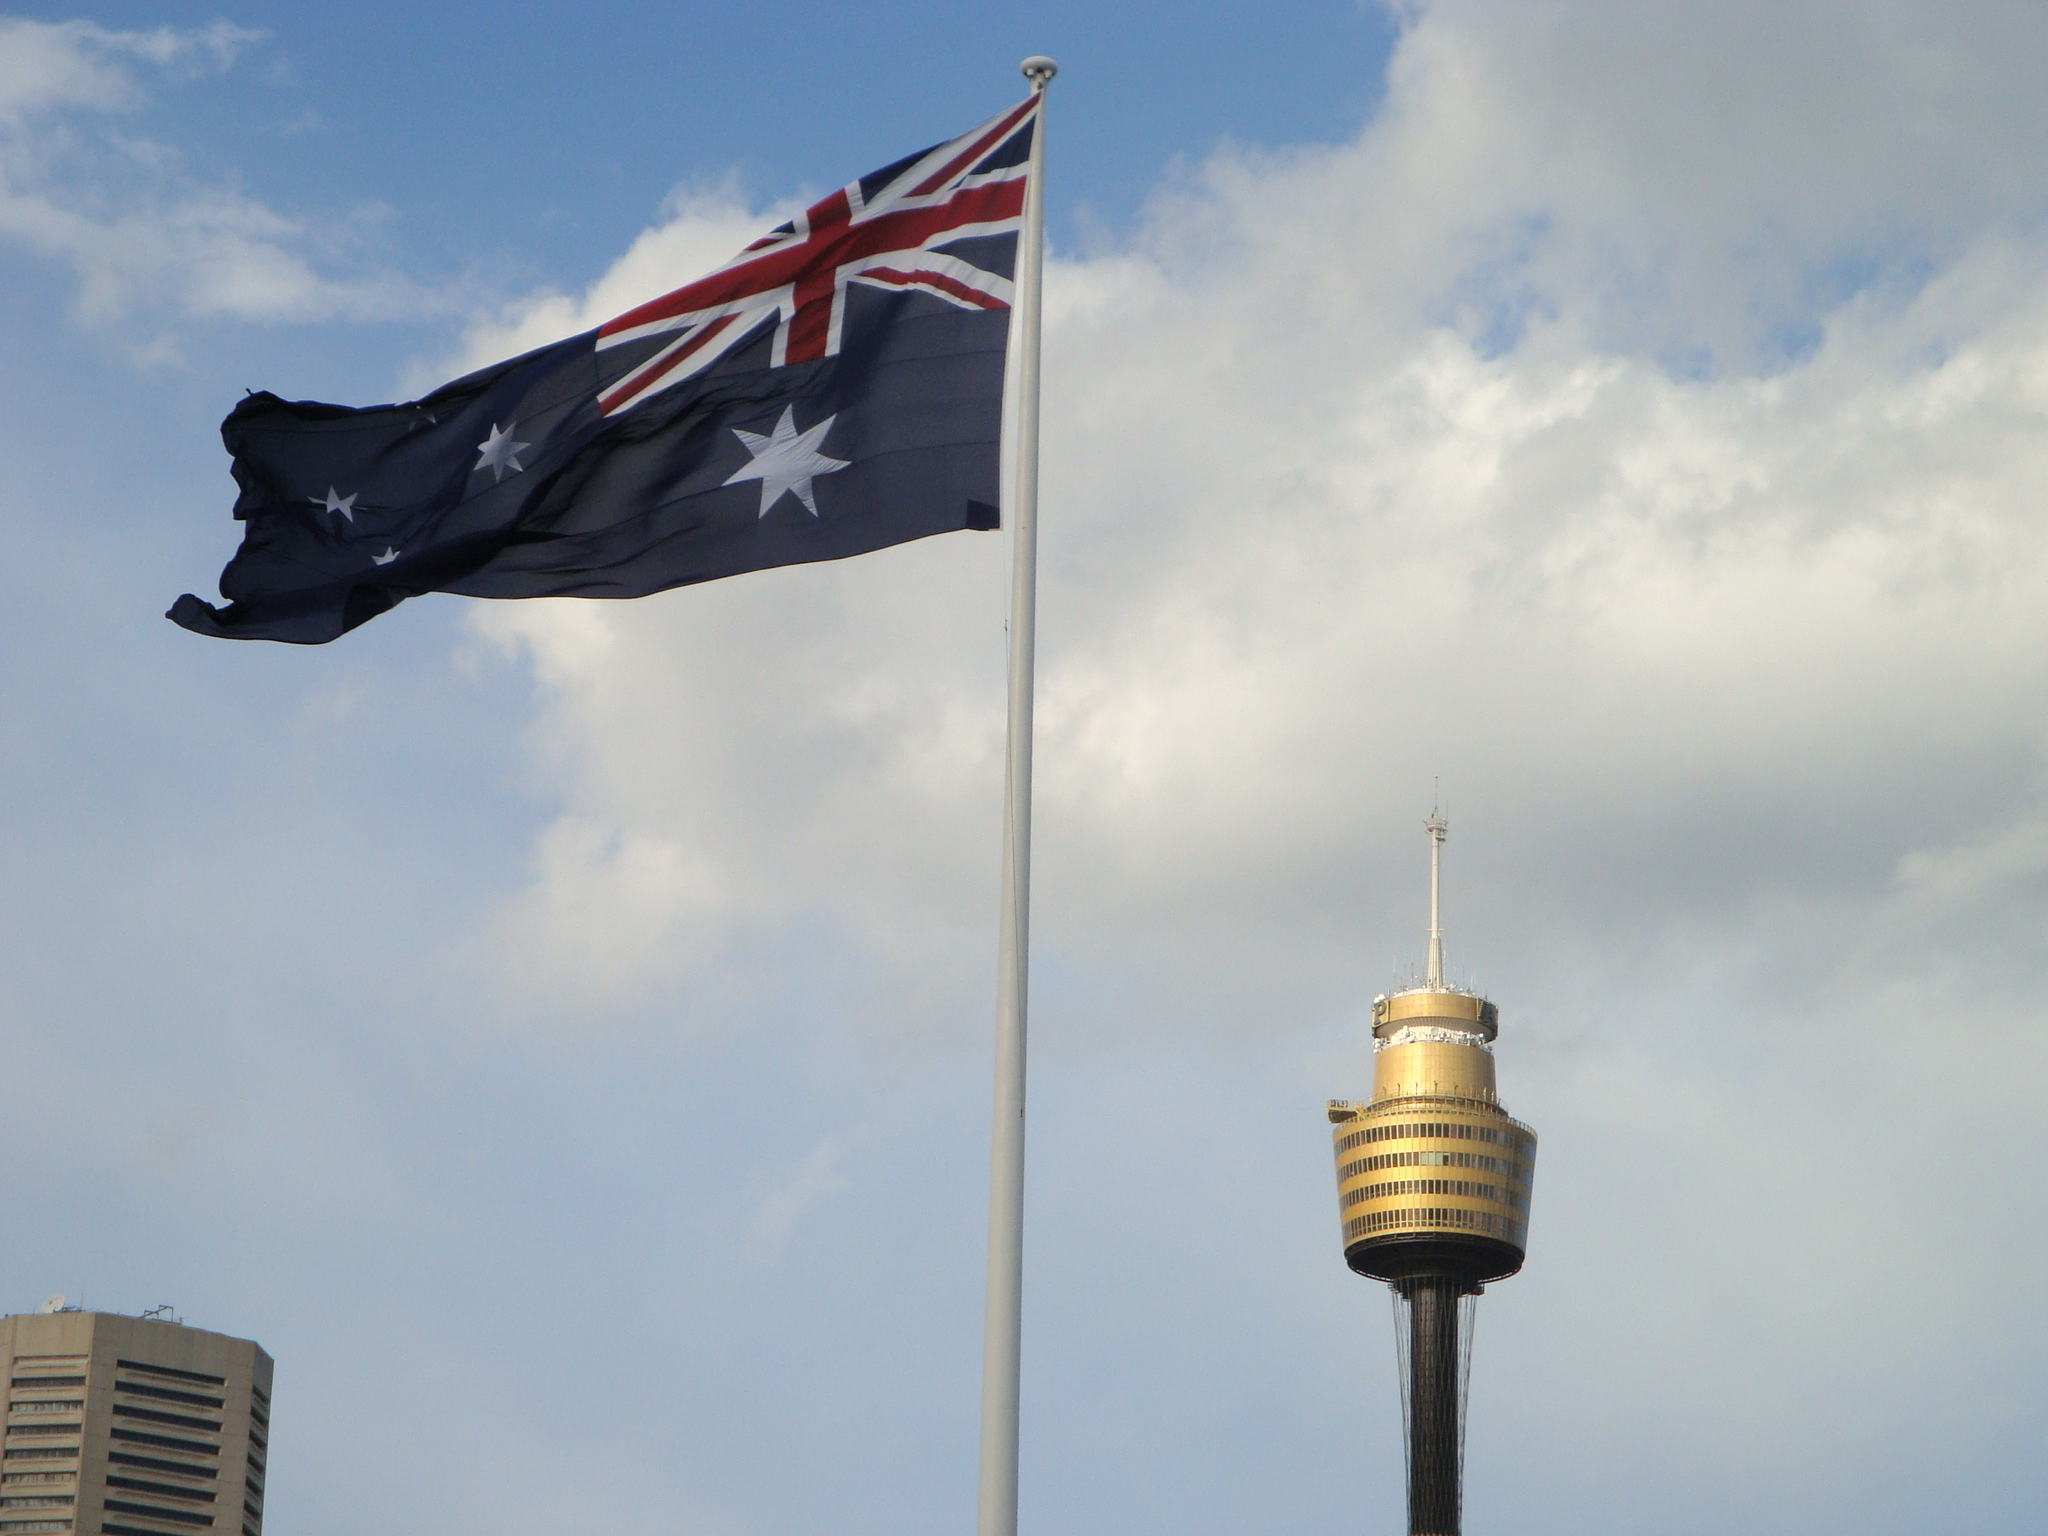 Darling Harbor Giant Australian Flag